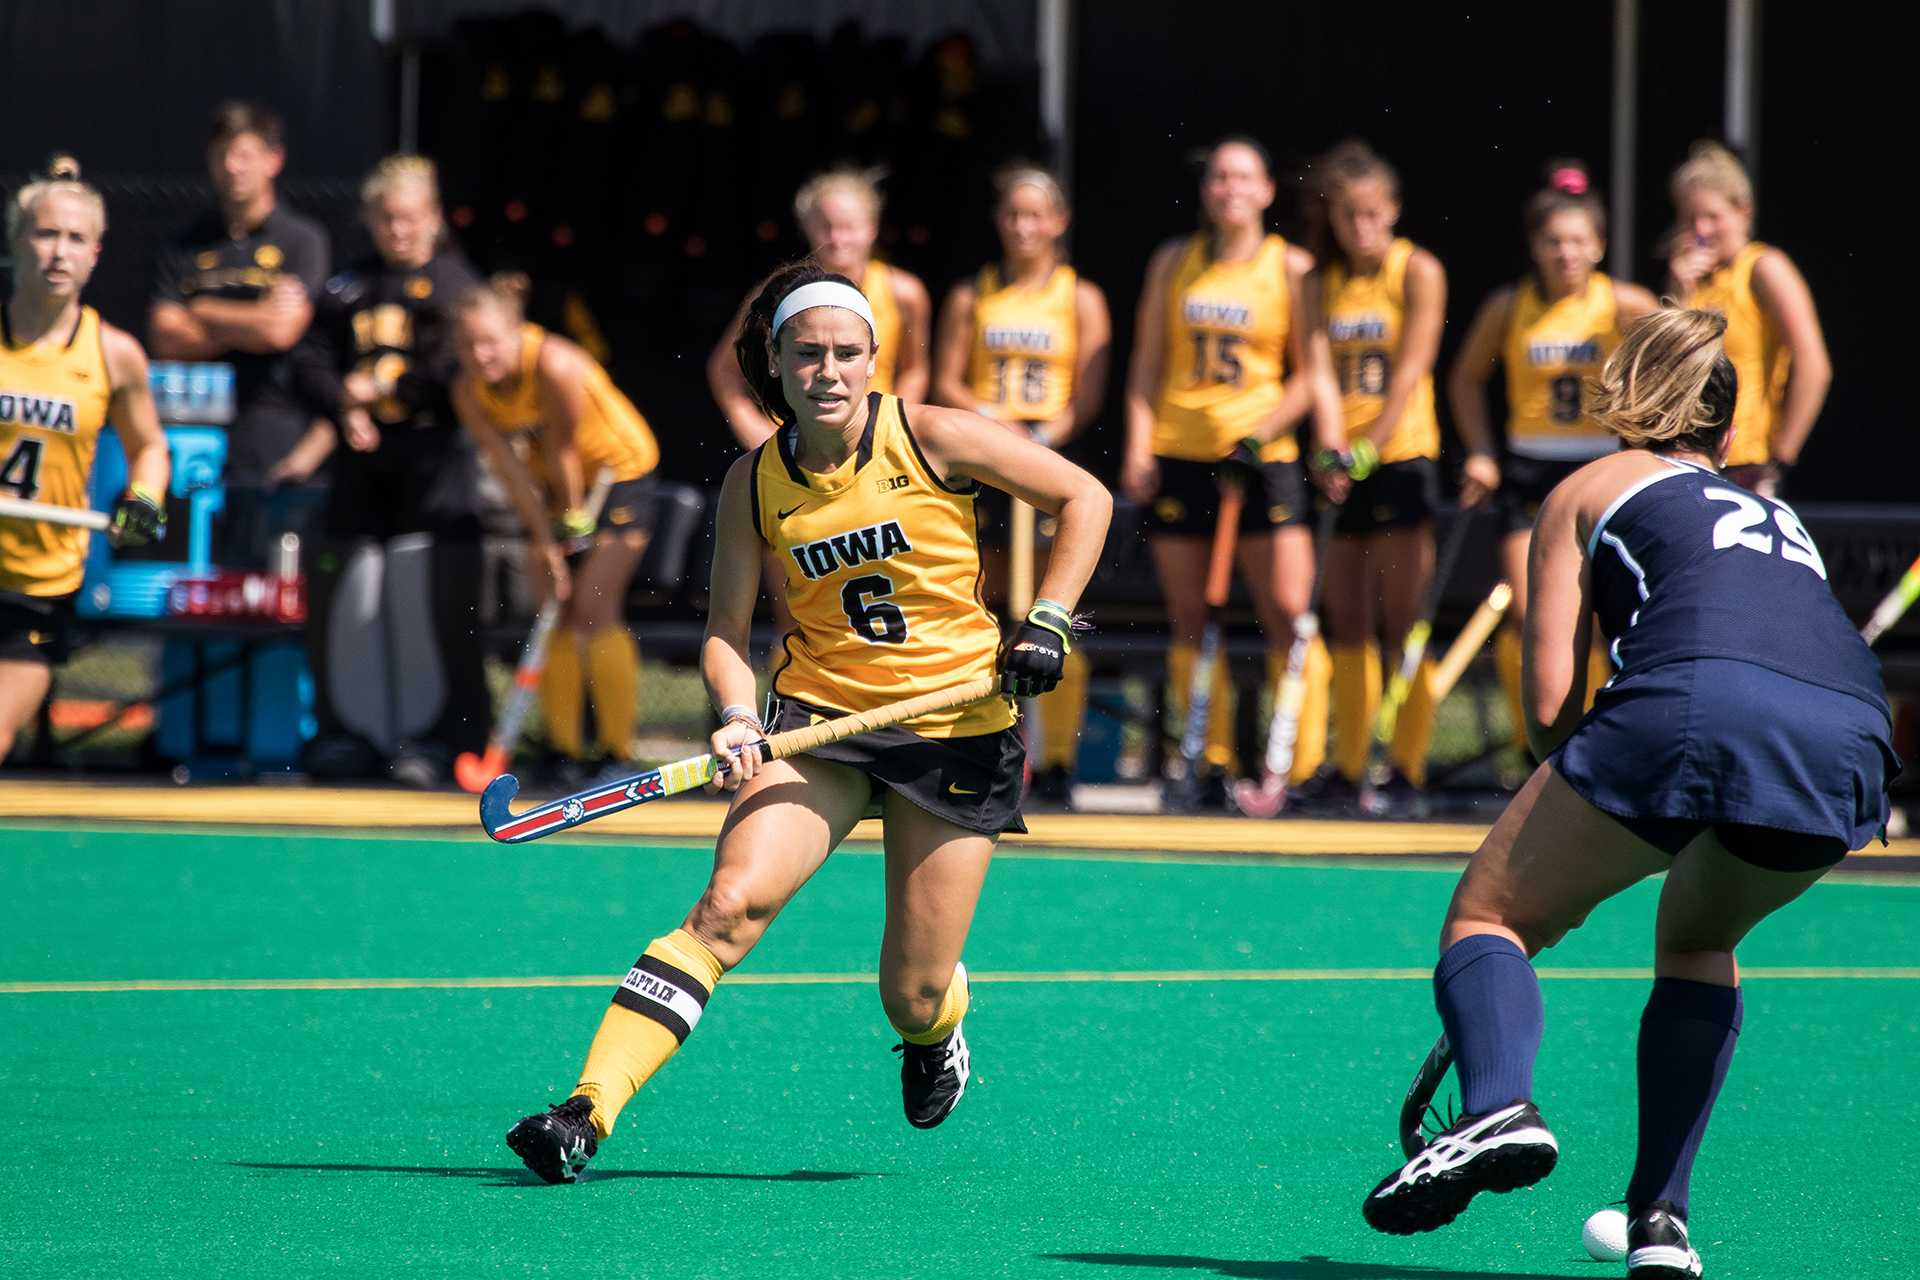 Iowa's Mallory Lefkowitz squares up against an opposing player during the Iowa-University of New Hampshire field hockey match on Sunday, 10 September, 2017. Iowa defeated UNH by a final score of 7-1. (David Harmantas/The Daily Iowan)